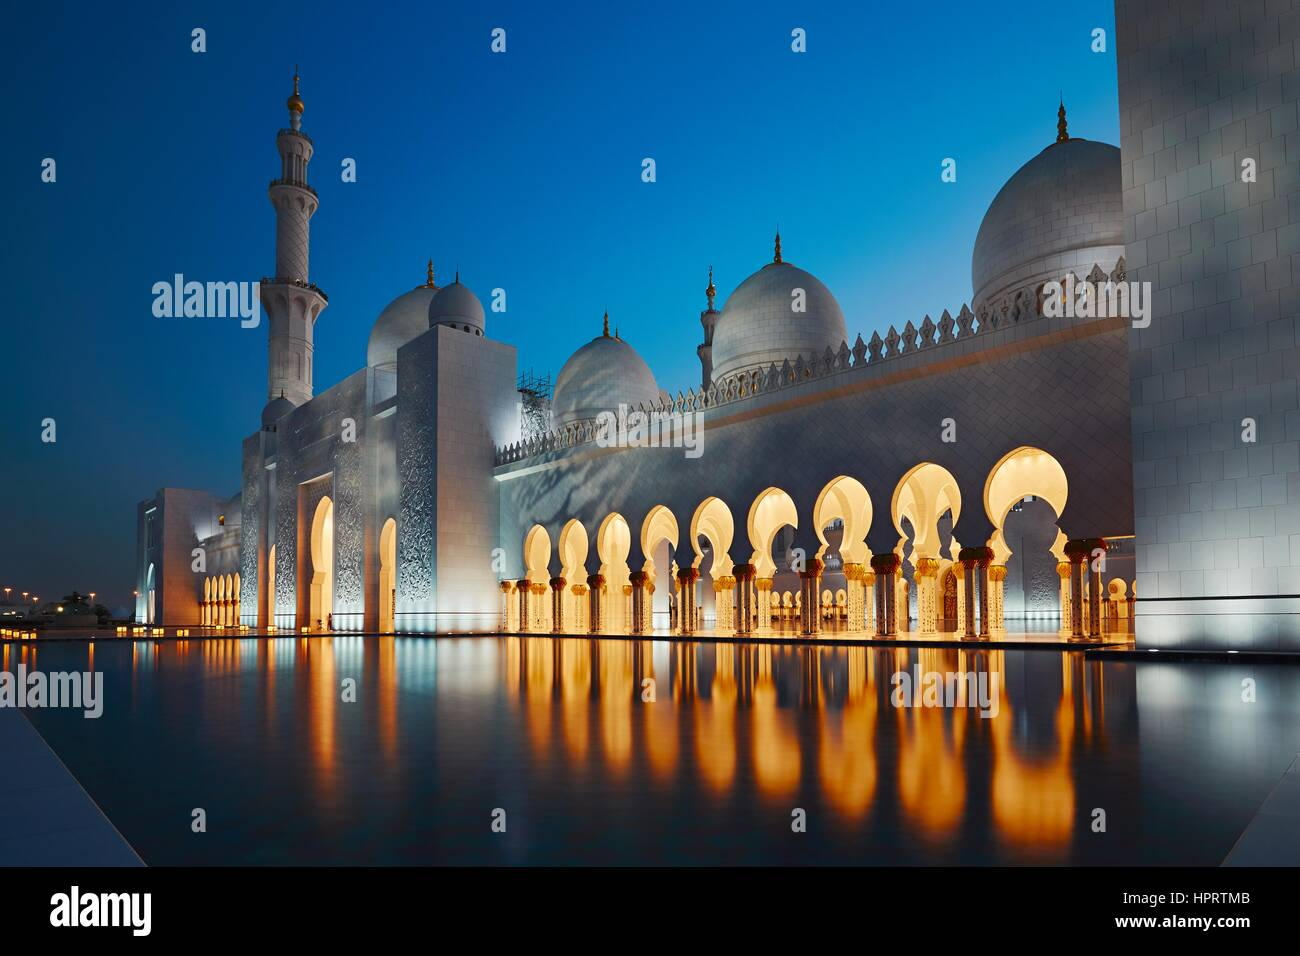 Mosque in Abu Dhabi, the capital city of the United Arab Emirate - Stock Image